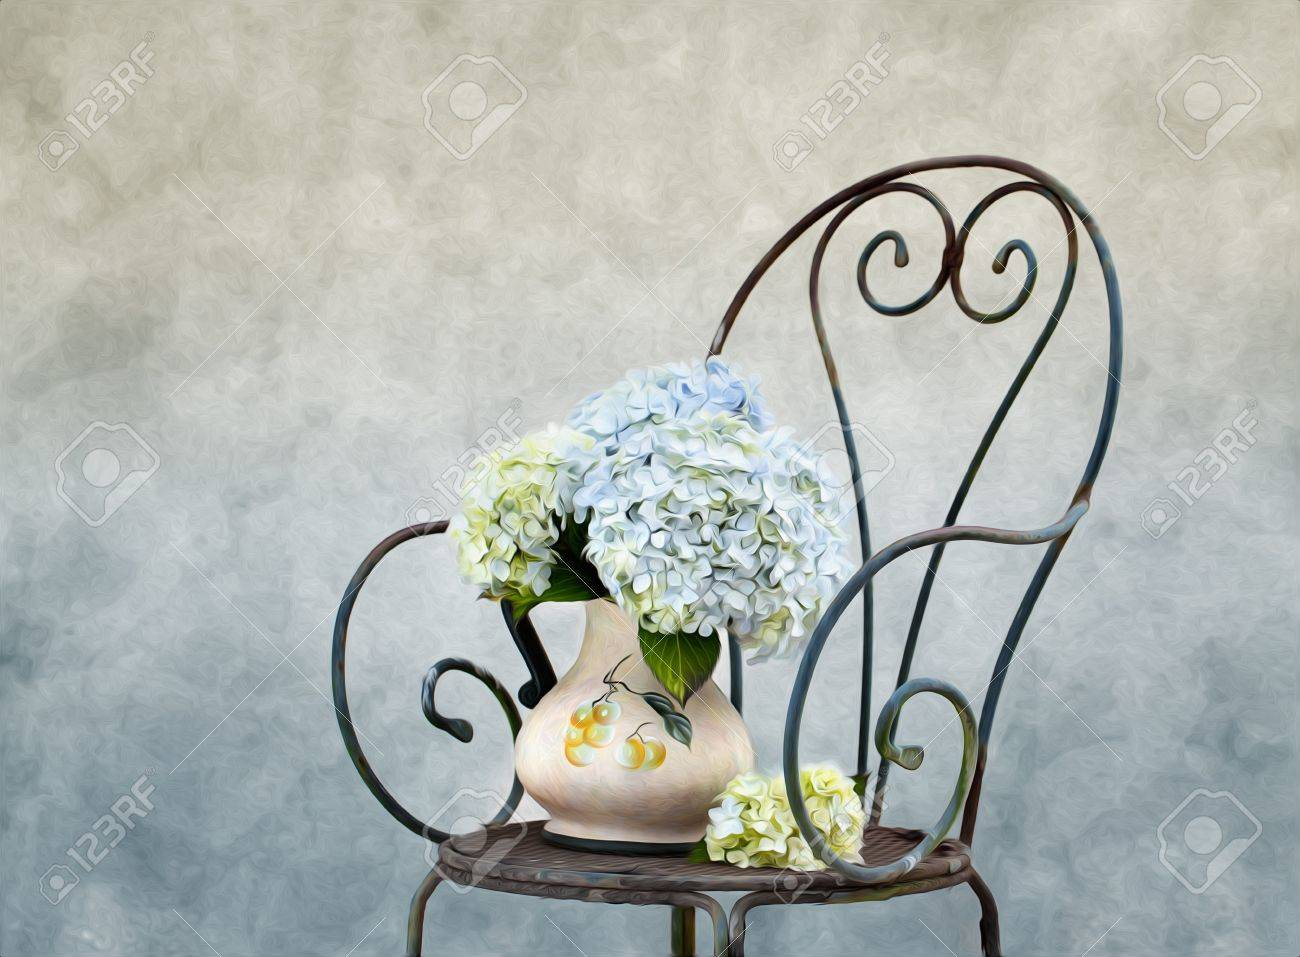 Still Life illustration with Hortensia Flowers in Oil Painting Style Stock Photo - 10418701